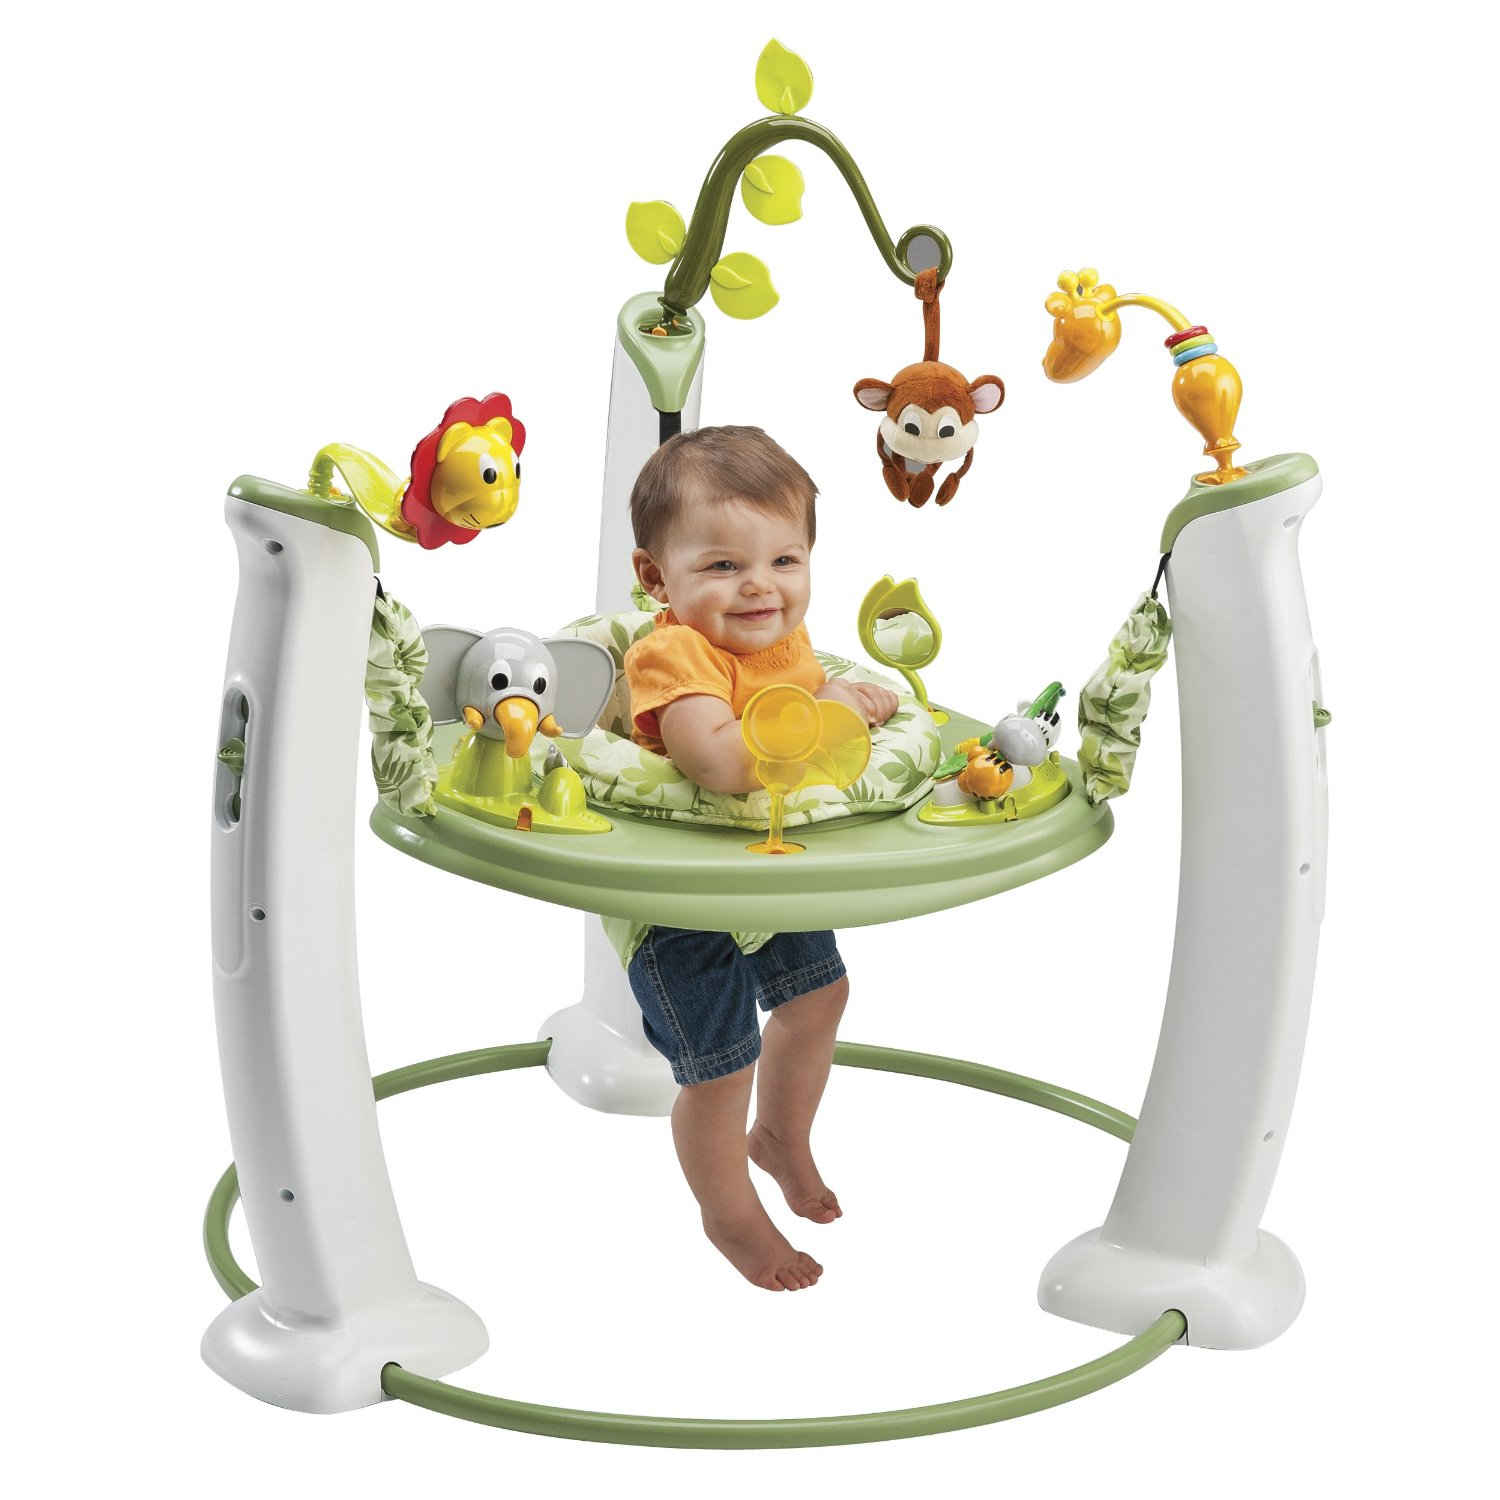 Evenflo ExerSaucer Jump & Learn Safari Friends